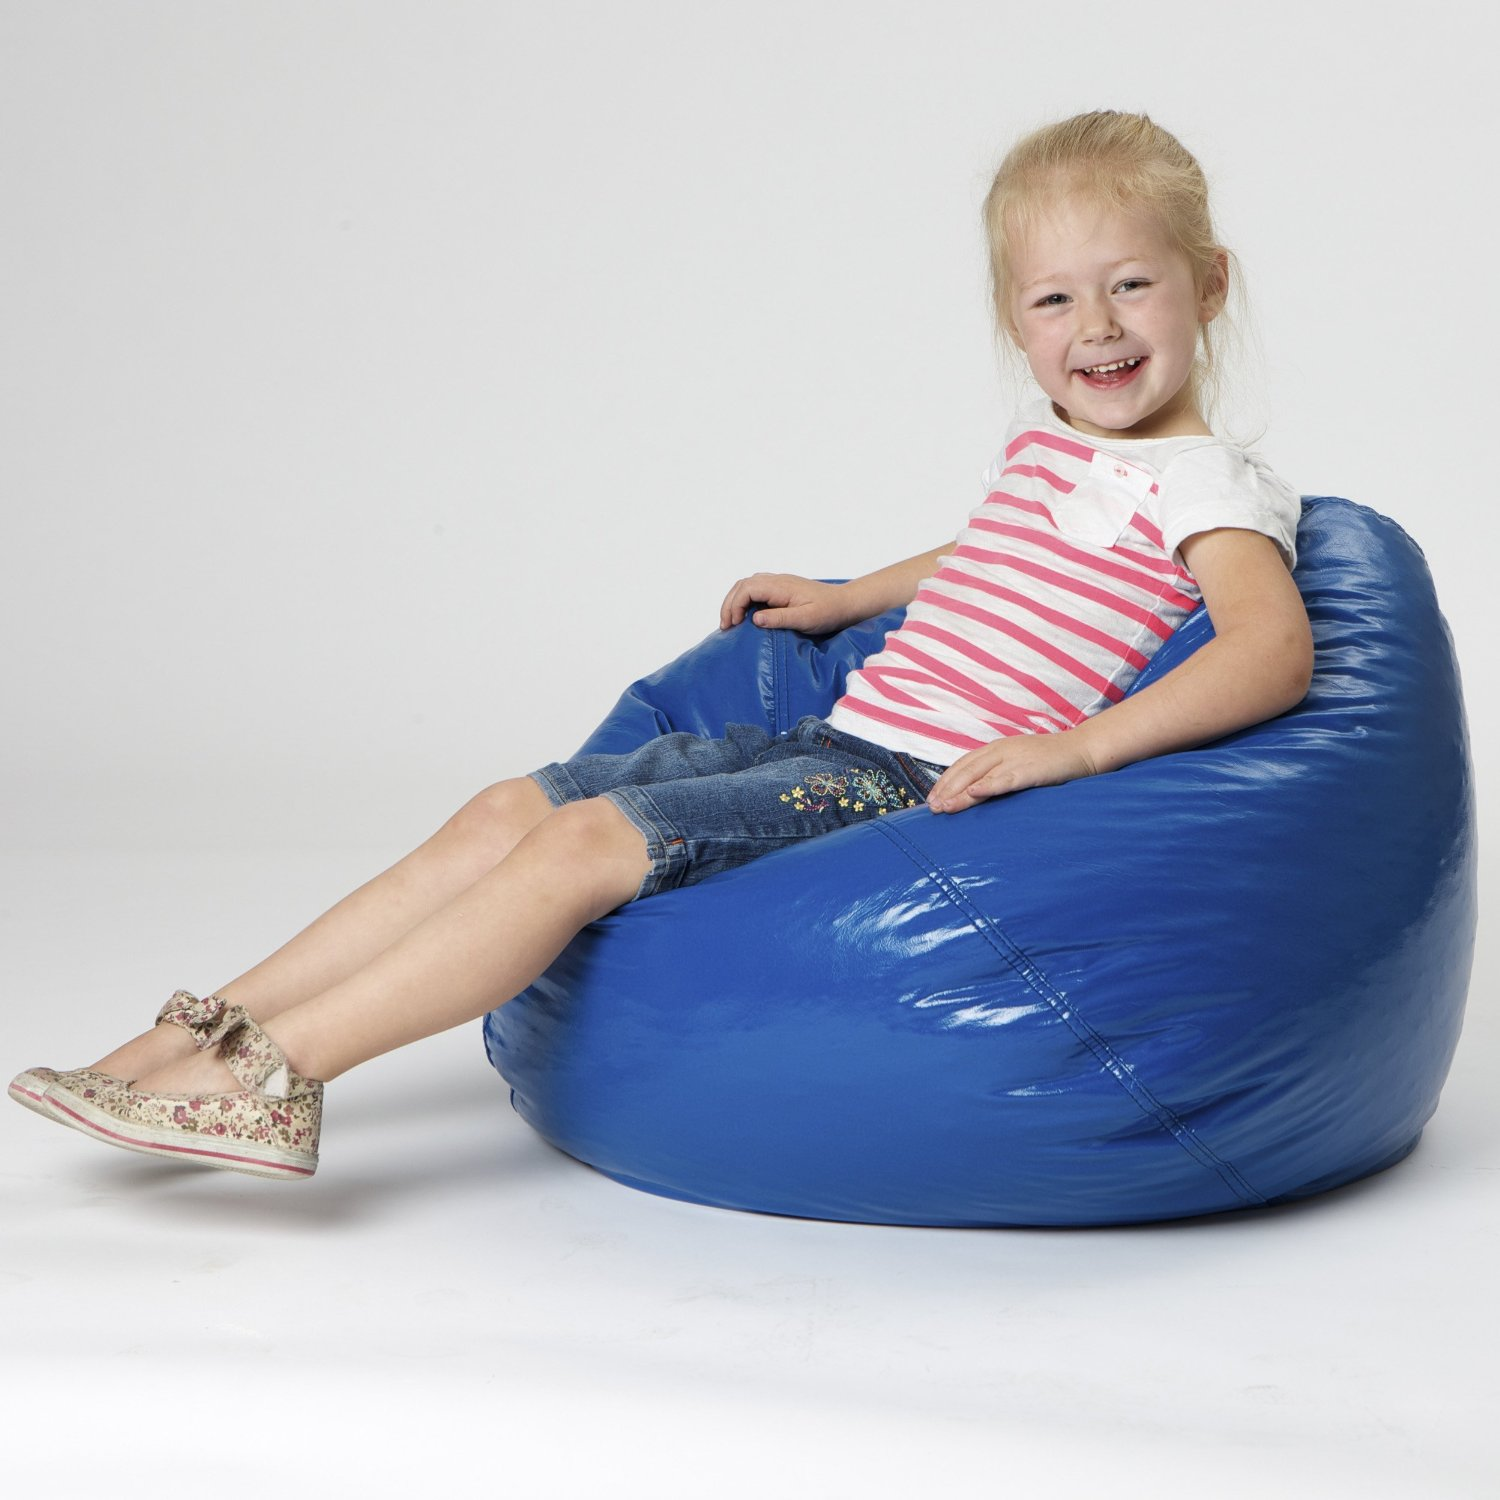 child size vinyl bean bag chair revolving price in nepal top 10 best kids 39 bags 2018 reviews